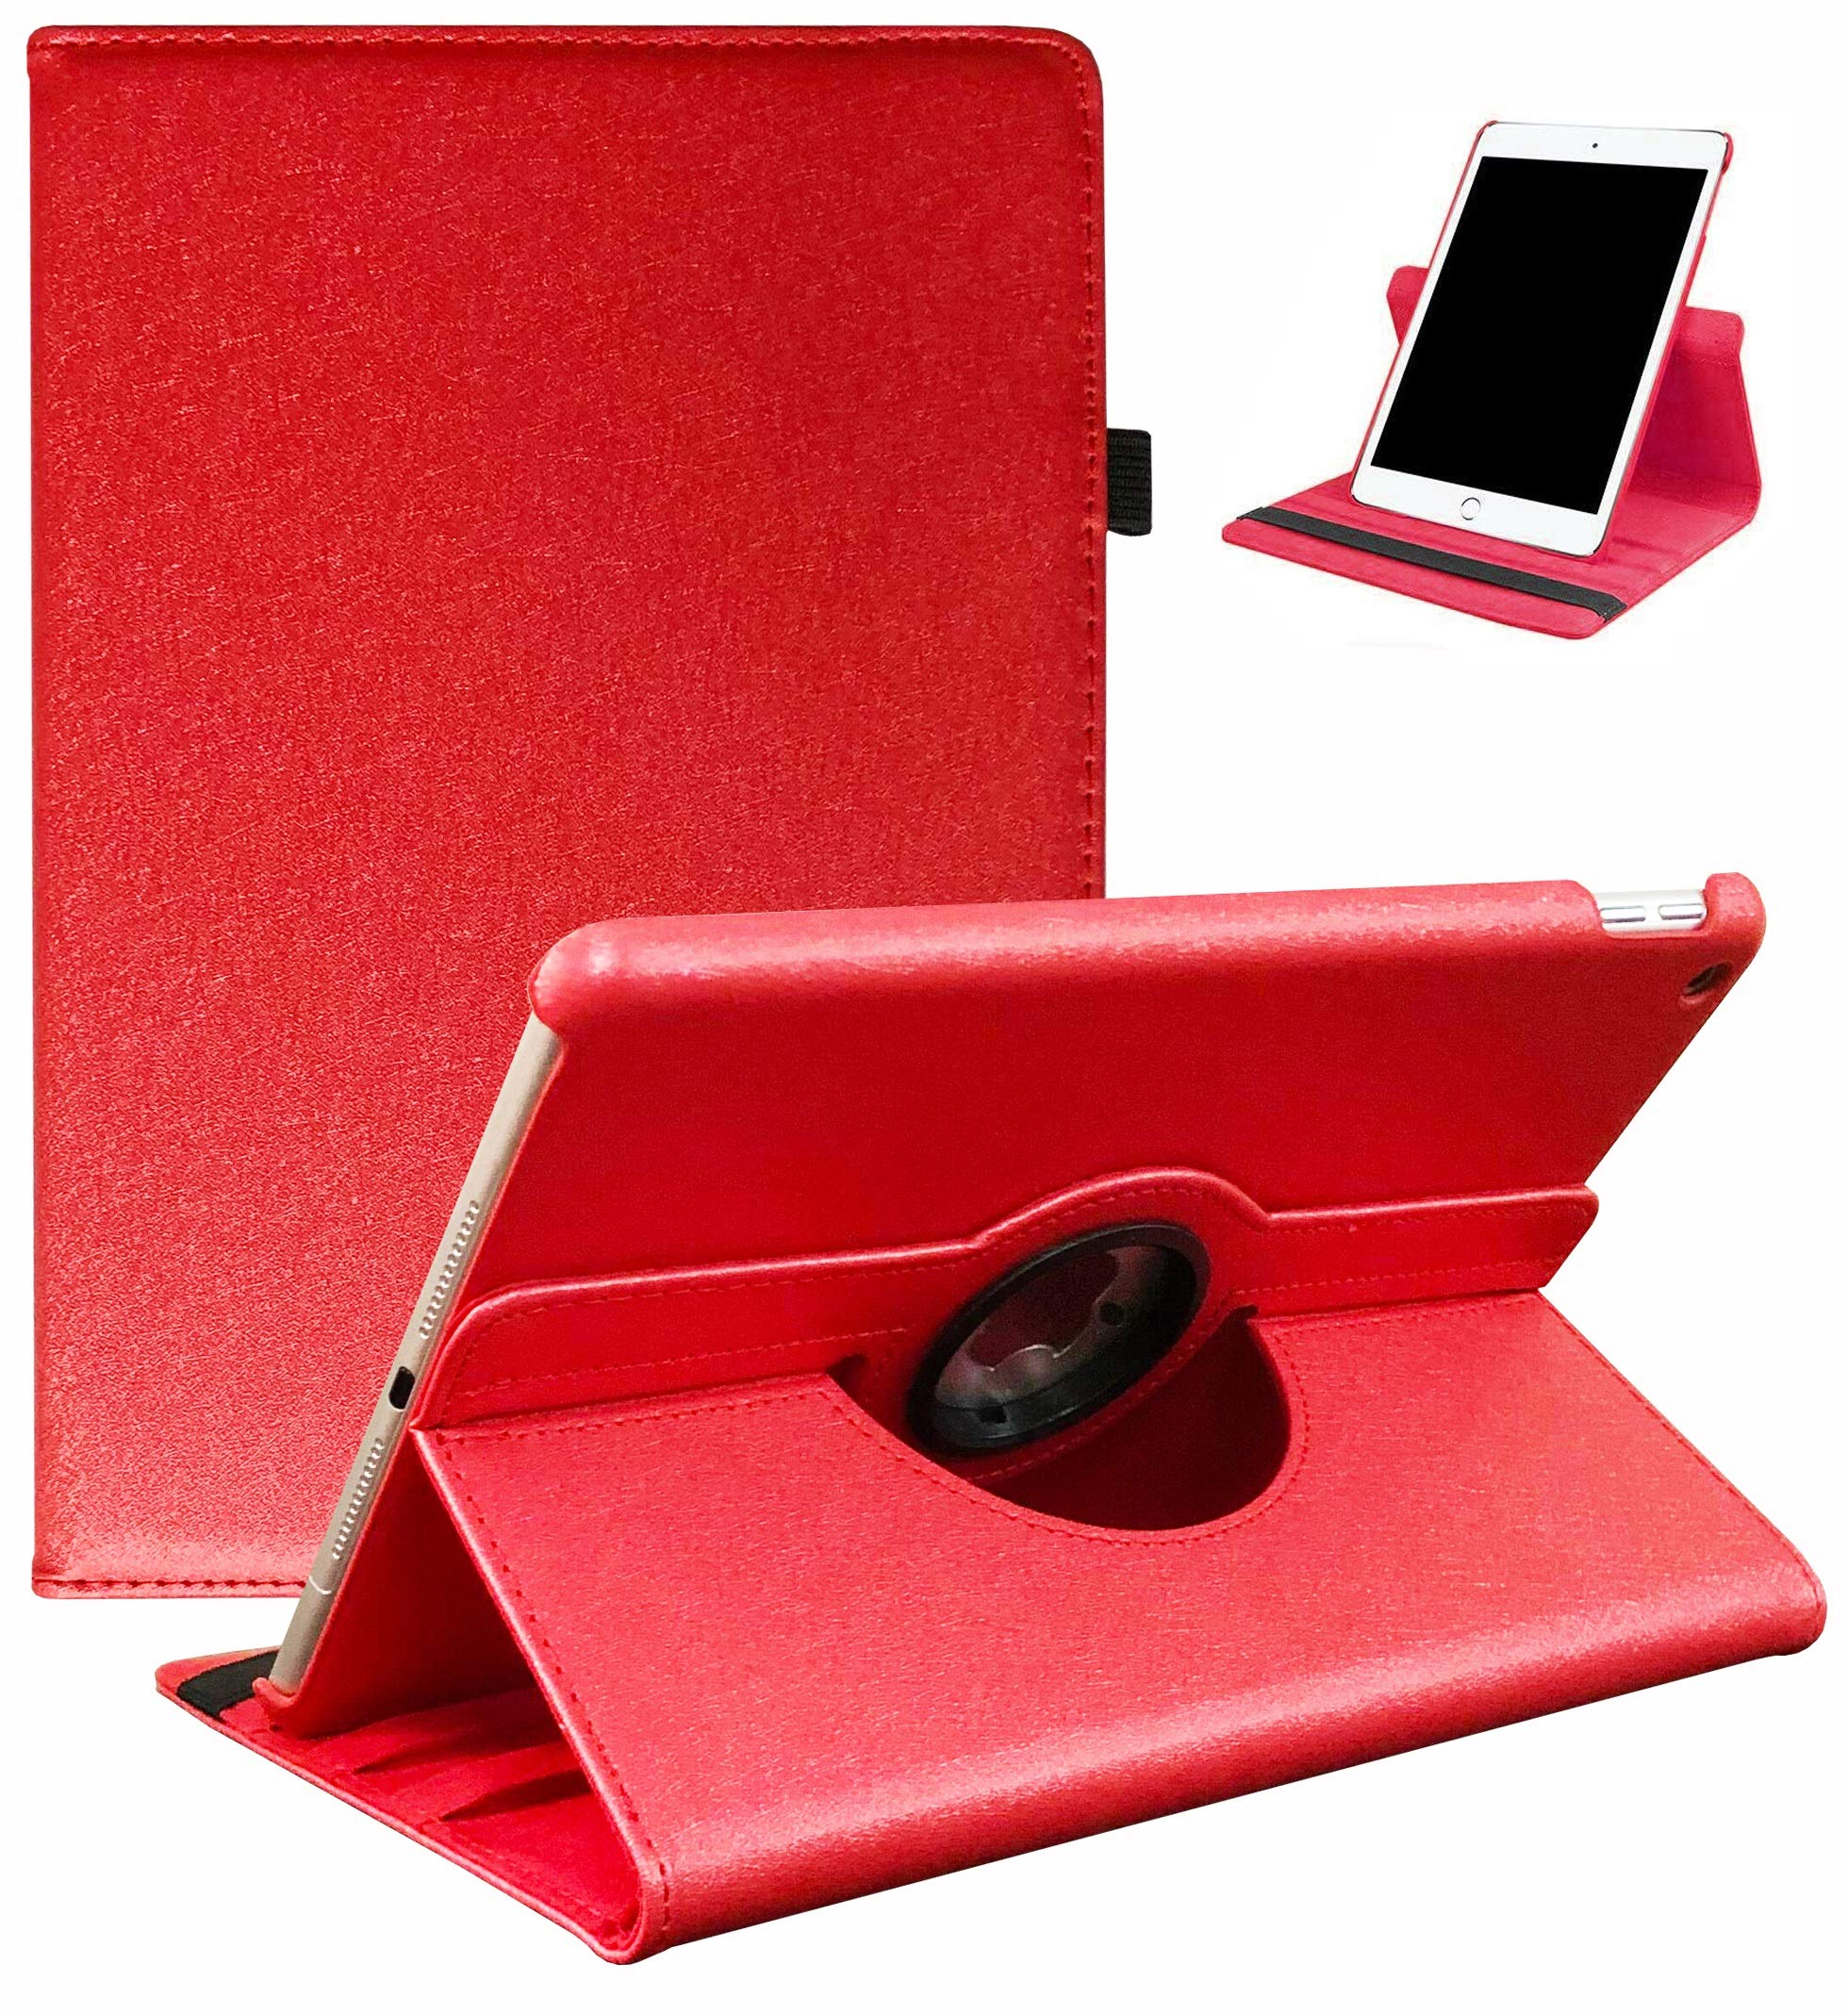 LayYun iPad 10.2 Case 2019 iPad 7th Generation Case - 360 Degree Rotating Stand Smart Case Protective Cover with Auto Wake/Sleep for iPad 10.2 Inch 2019 (A2197 A2198 A2200) (Red)